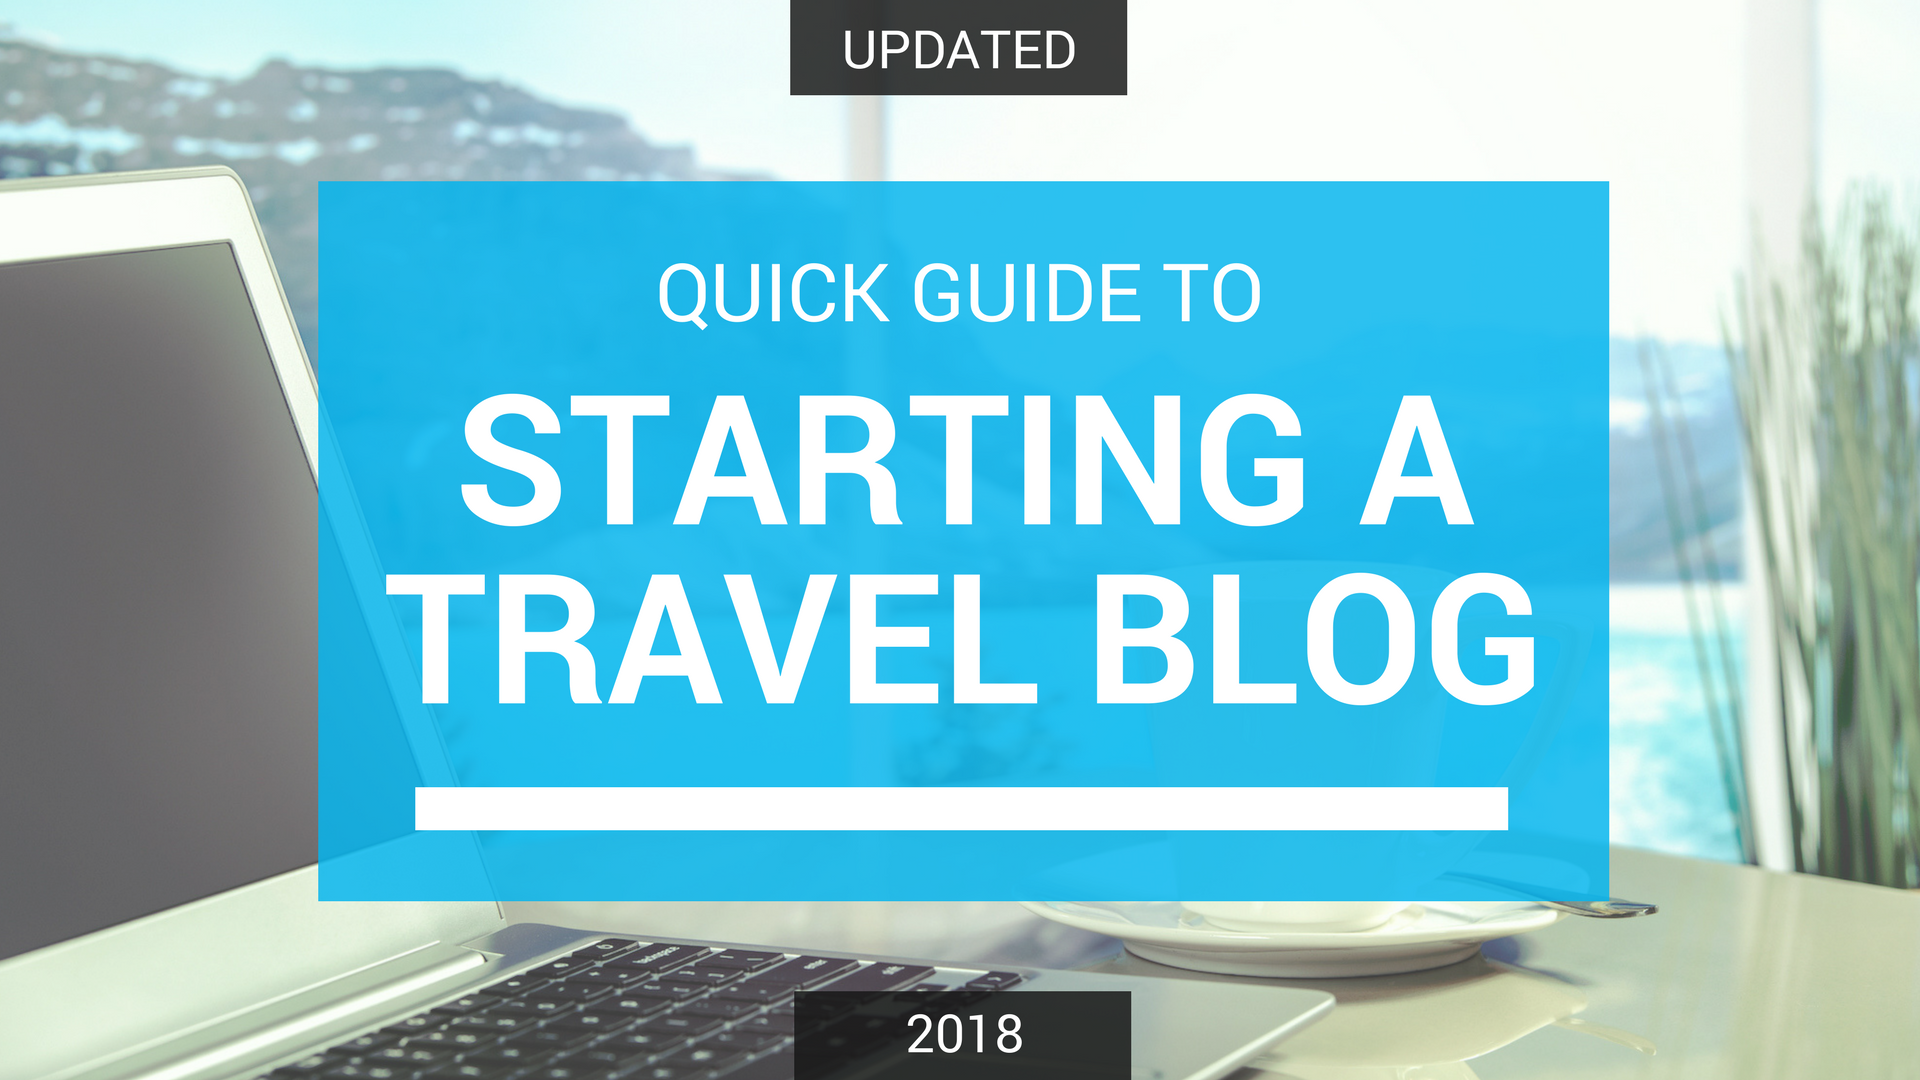 Quick Guide to Travel Blogging